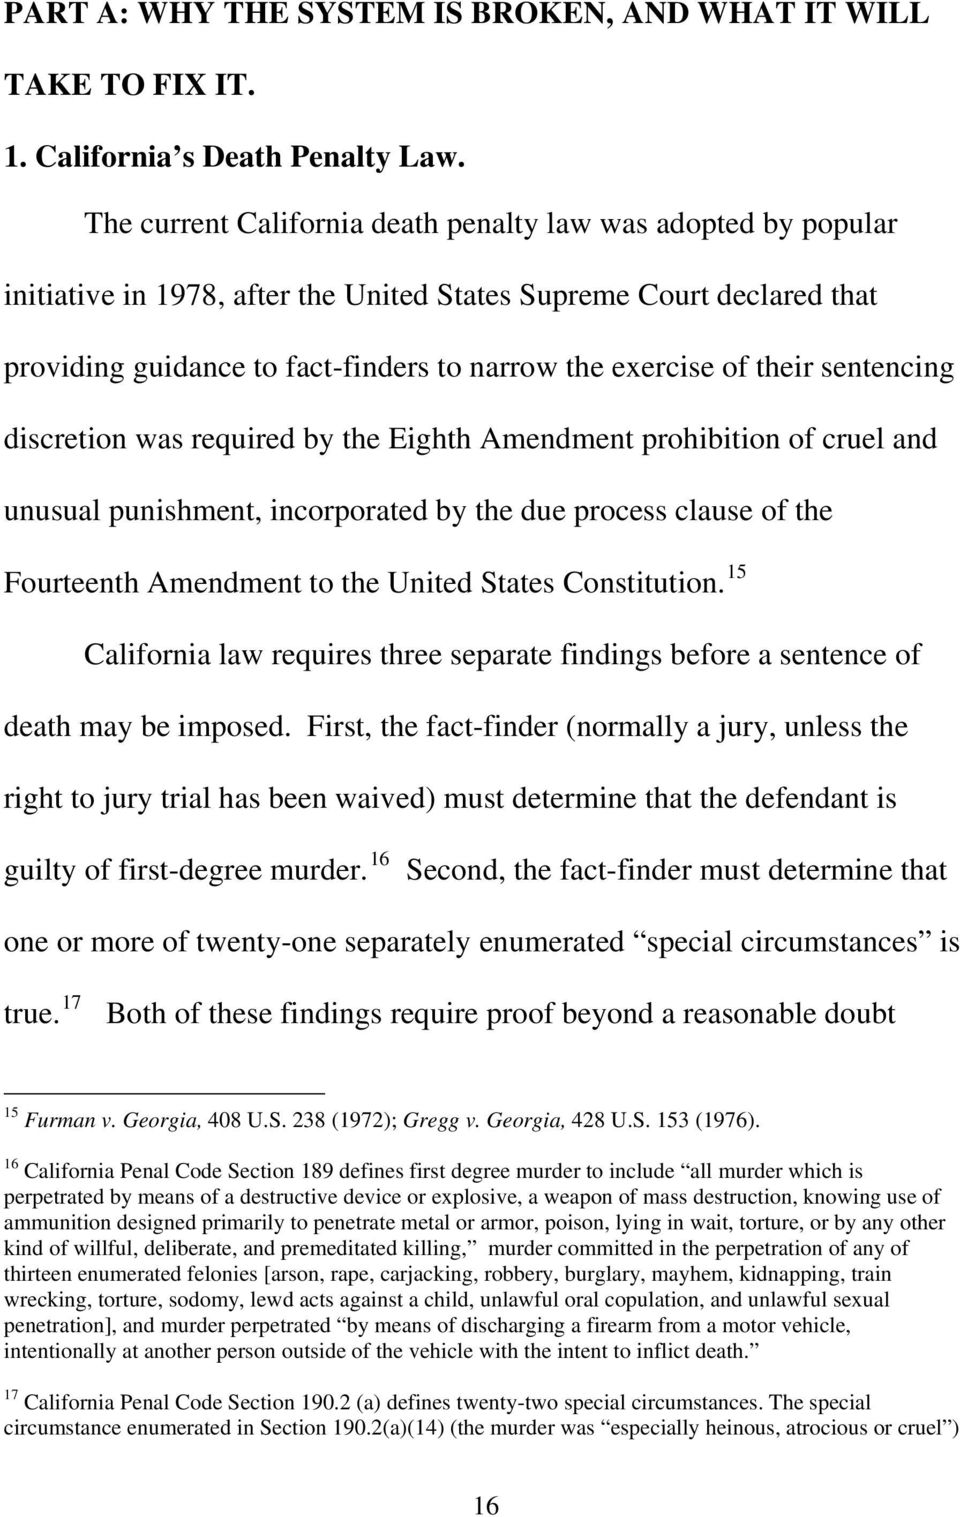 their sentencing discretion was required by the Eighth Amendment prohibition of cruel and unusual punishment, incorporated by the due process clause of the Fourteenth Amendment to the United States